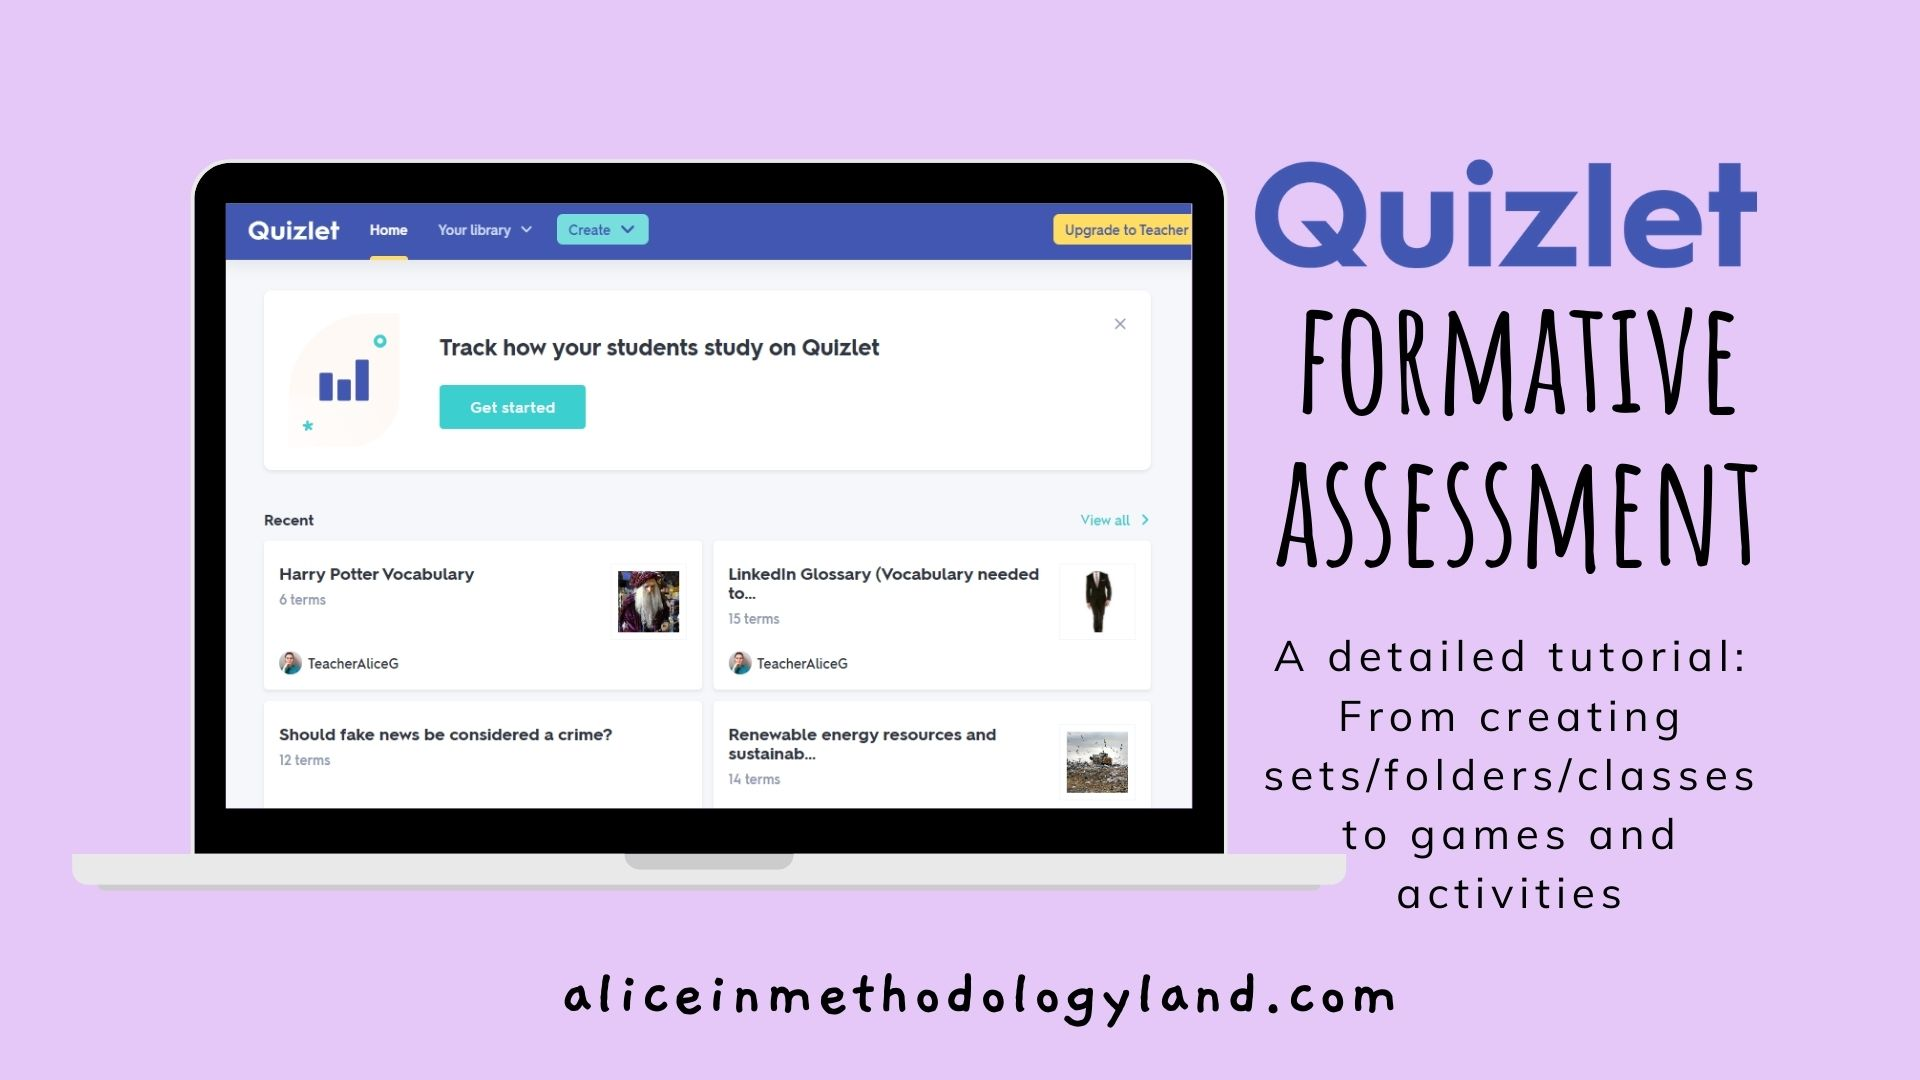 Quizlet & Formative Assessment: A detailed Tutorial (Creating Sets/Folders/Classes to Games and Activities)